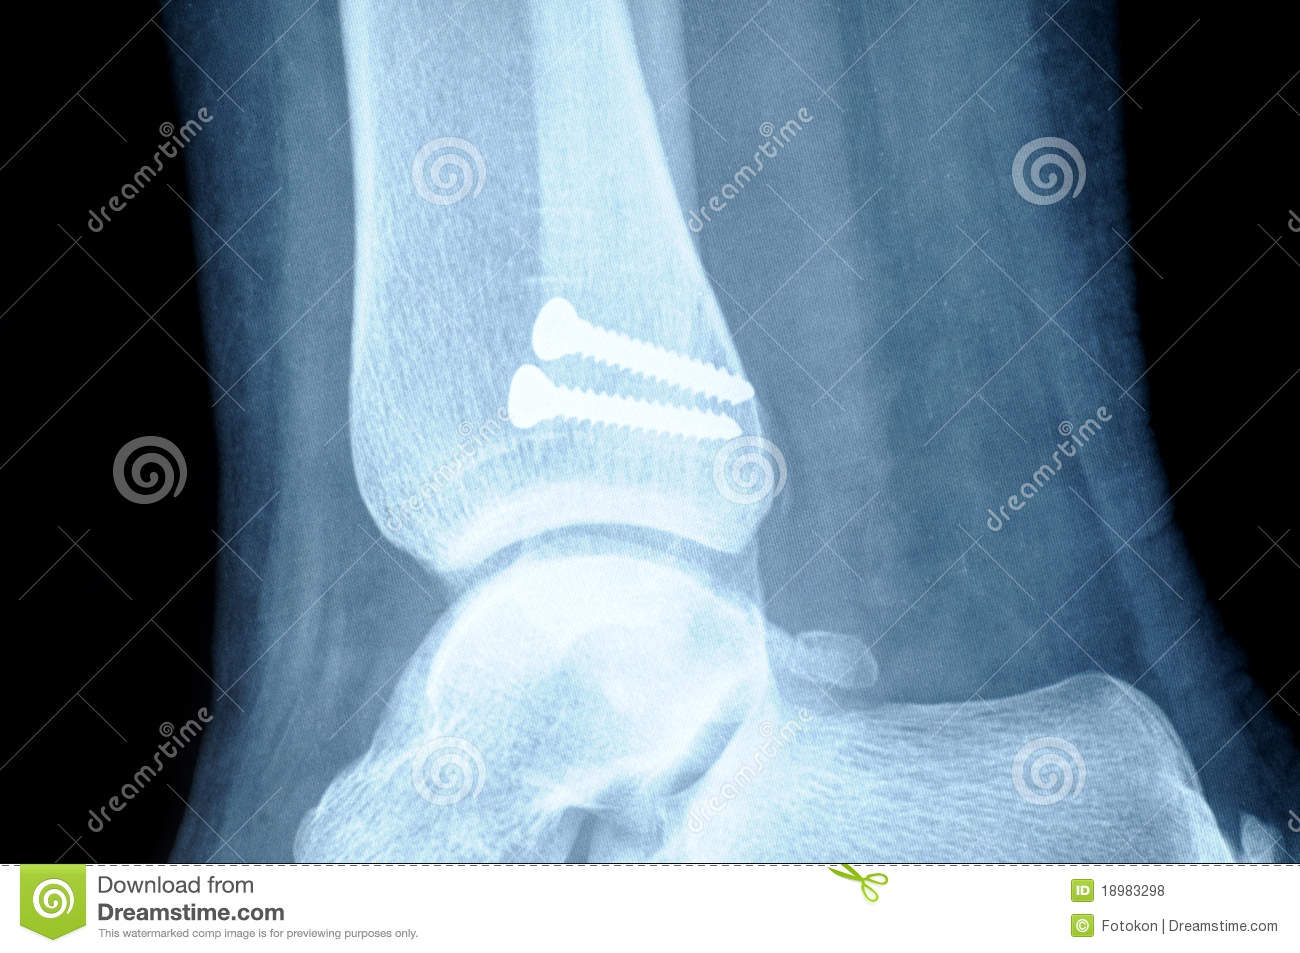 Radiograph Of Human Fracture Fibula Bone Royalty Free Stock Photos ...